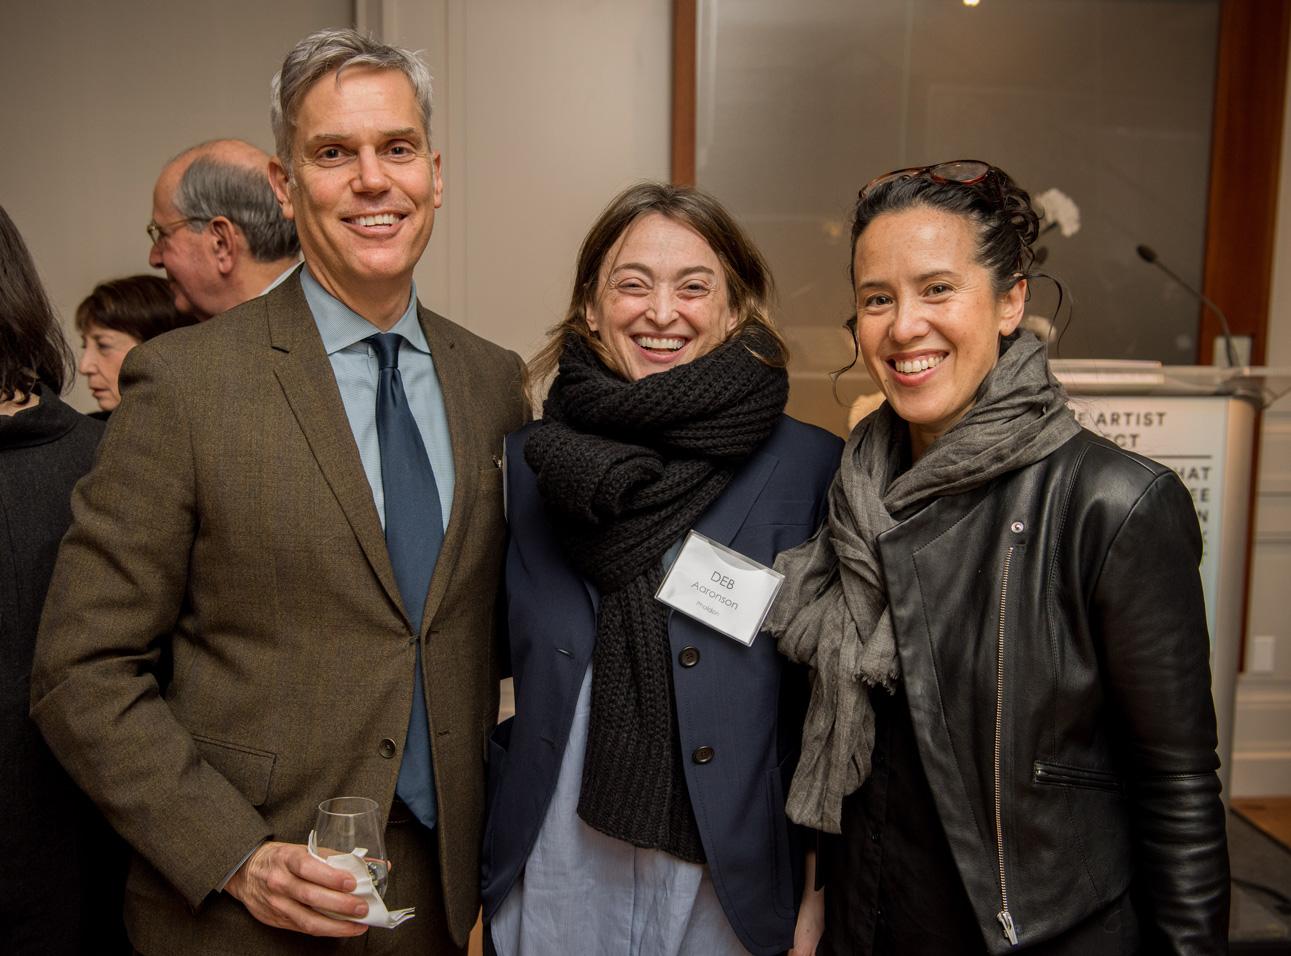 Phaidon's CEO Keith Fox and Group Publisher Deb Aaronson with artist Sarah Sze